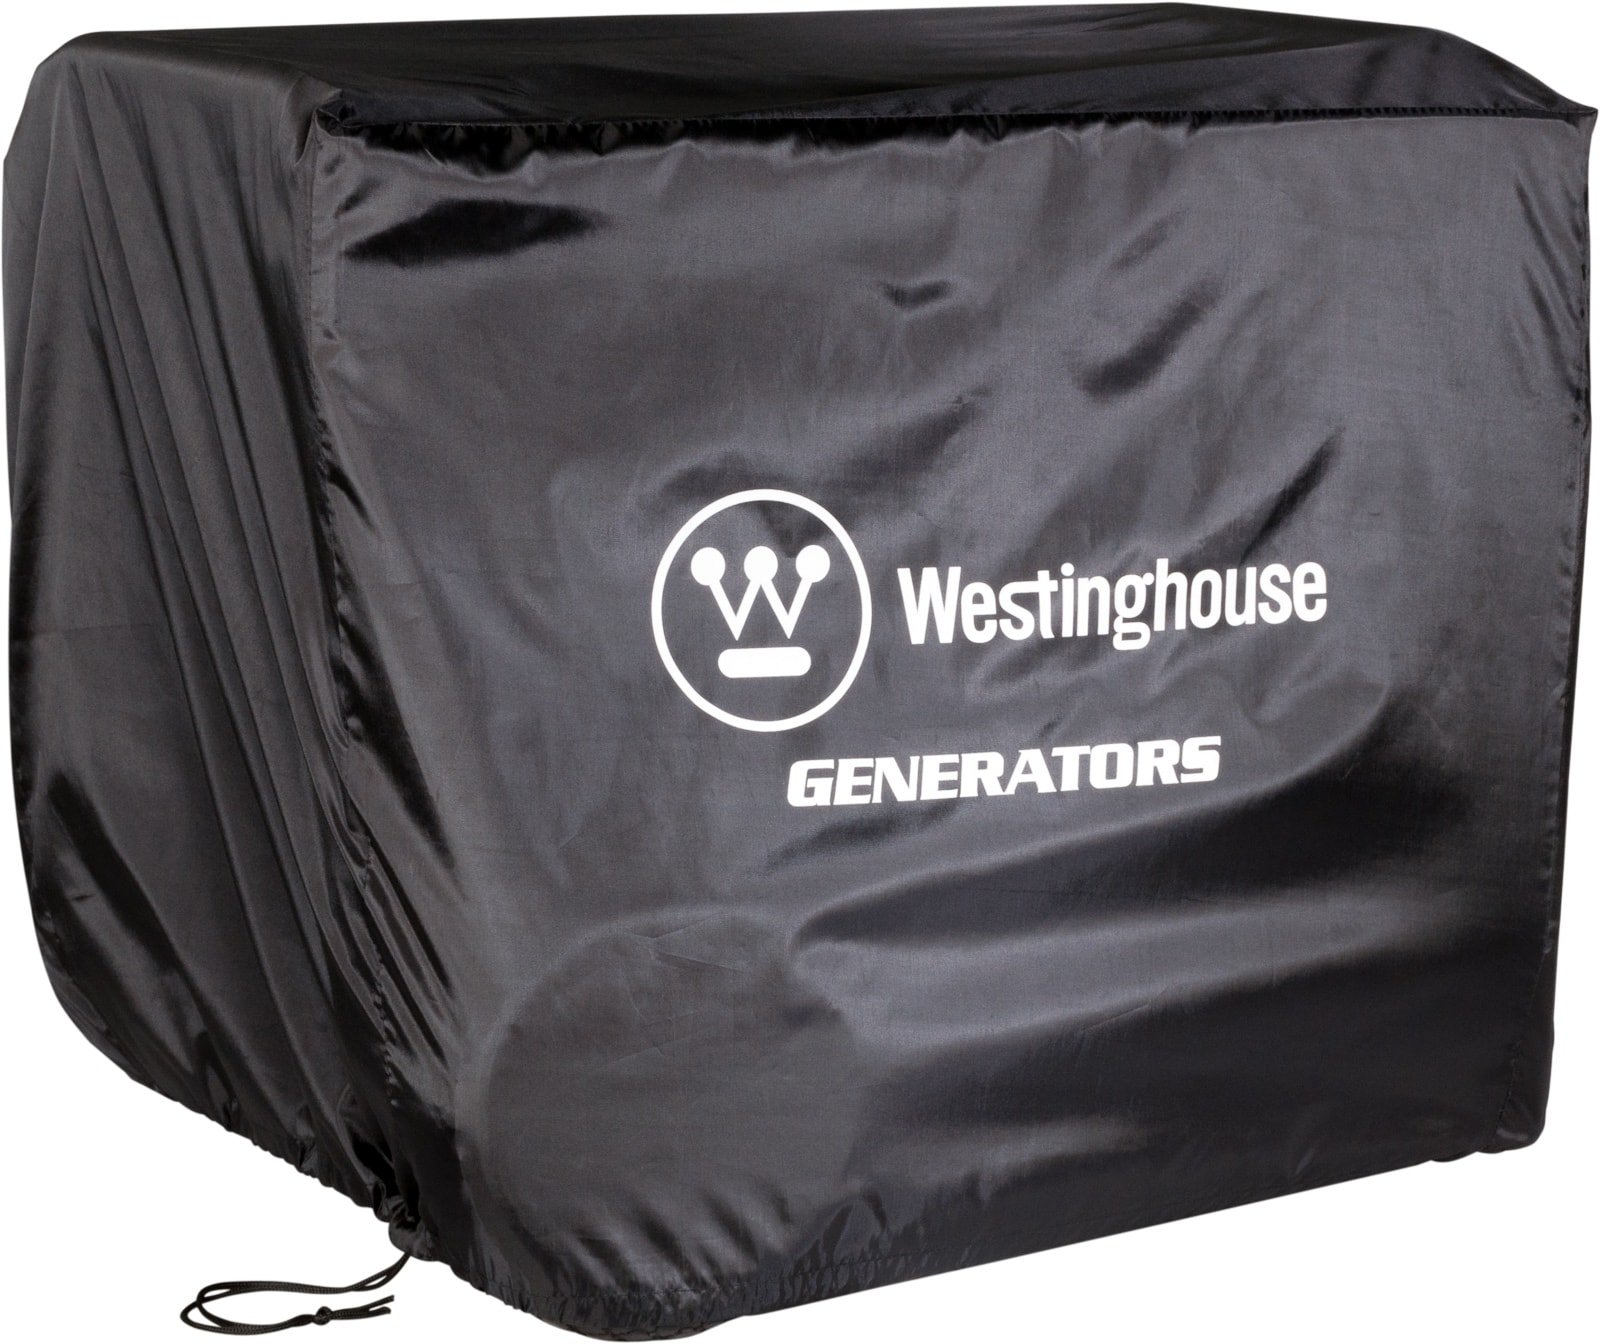 Westinghouse WGen Generator Cover - Universal Fit - For Westinghouse Portable Generators Up to 7500 Rated Watts by Westinghouse